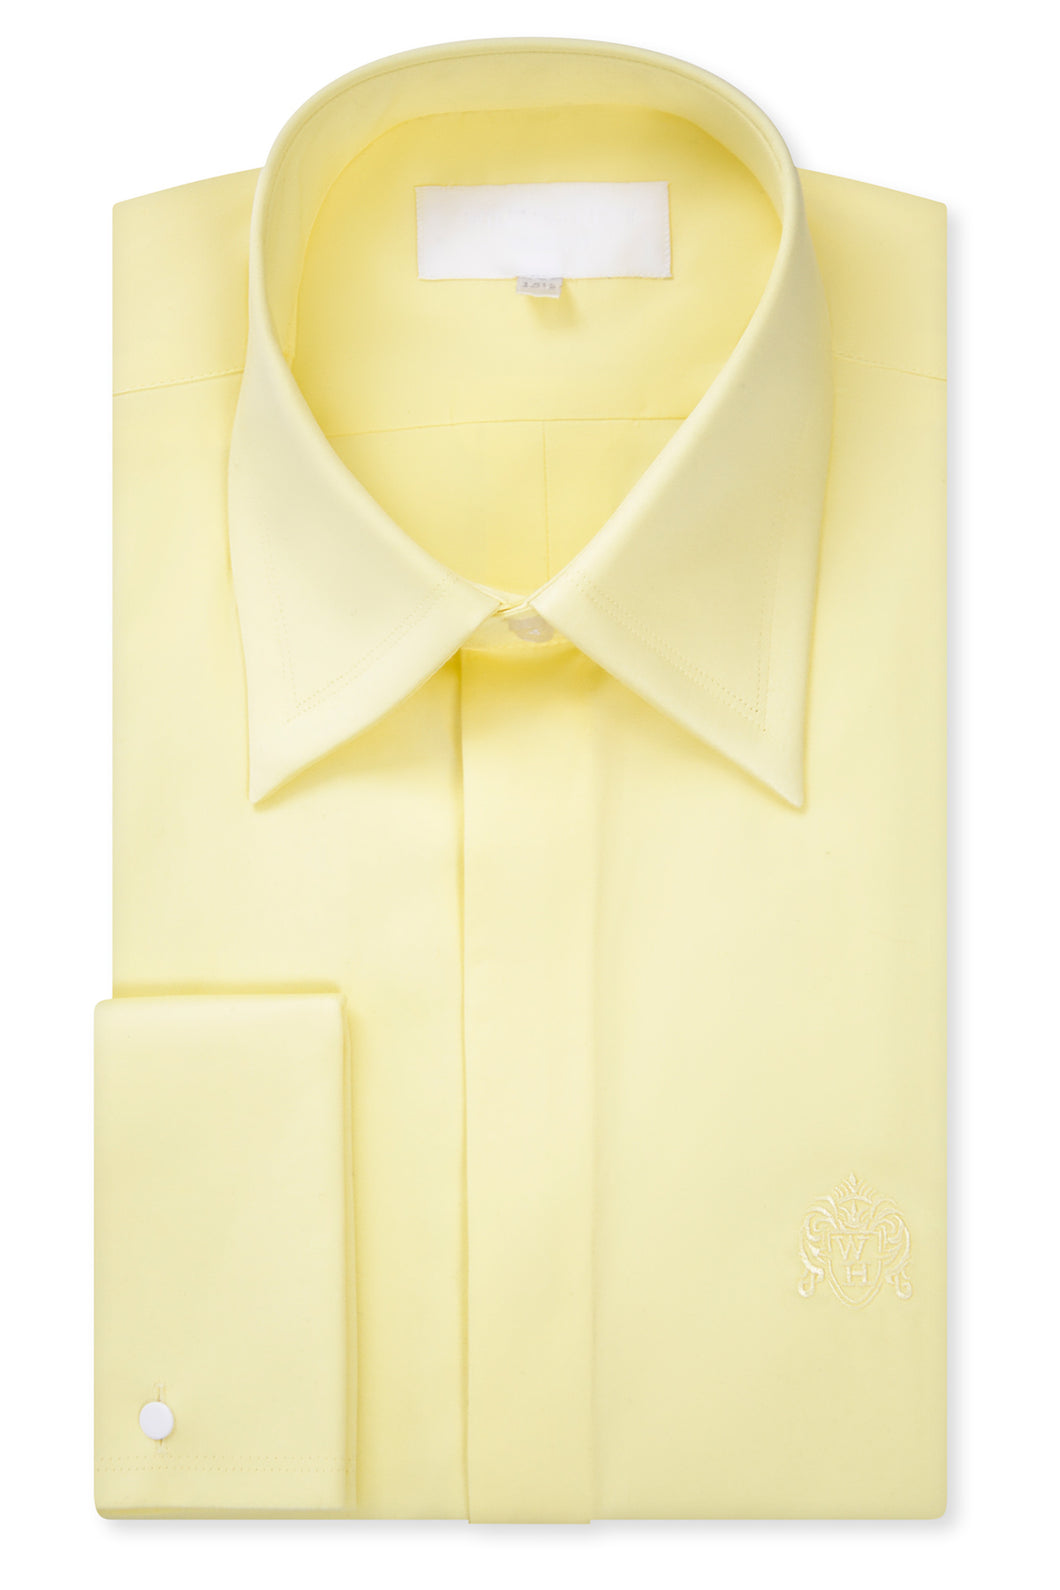 Yellow Forward Point Collar Shirt